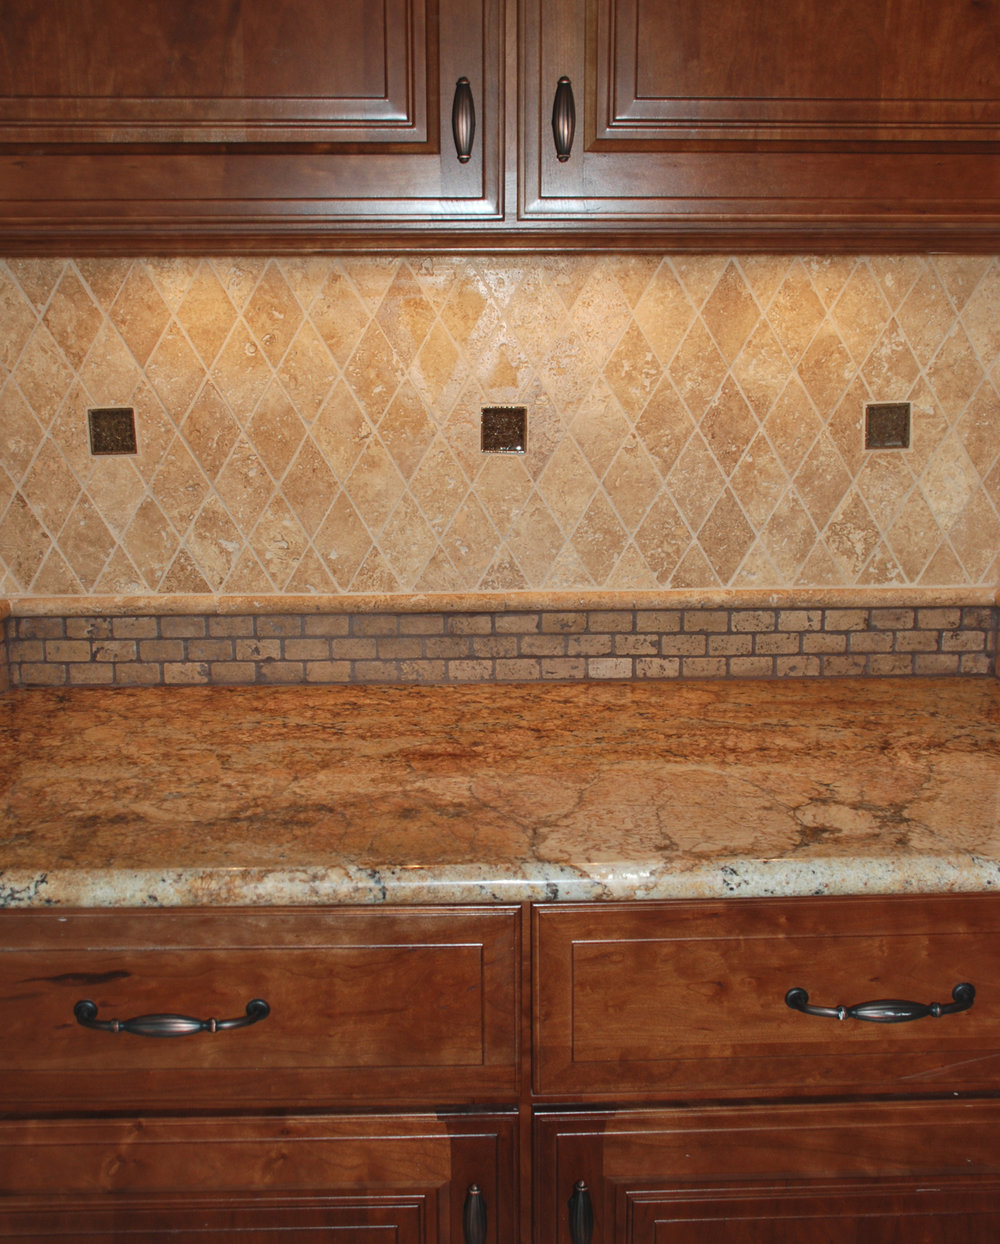 Tumbled travertine subway tile